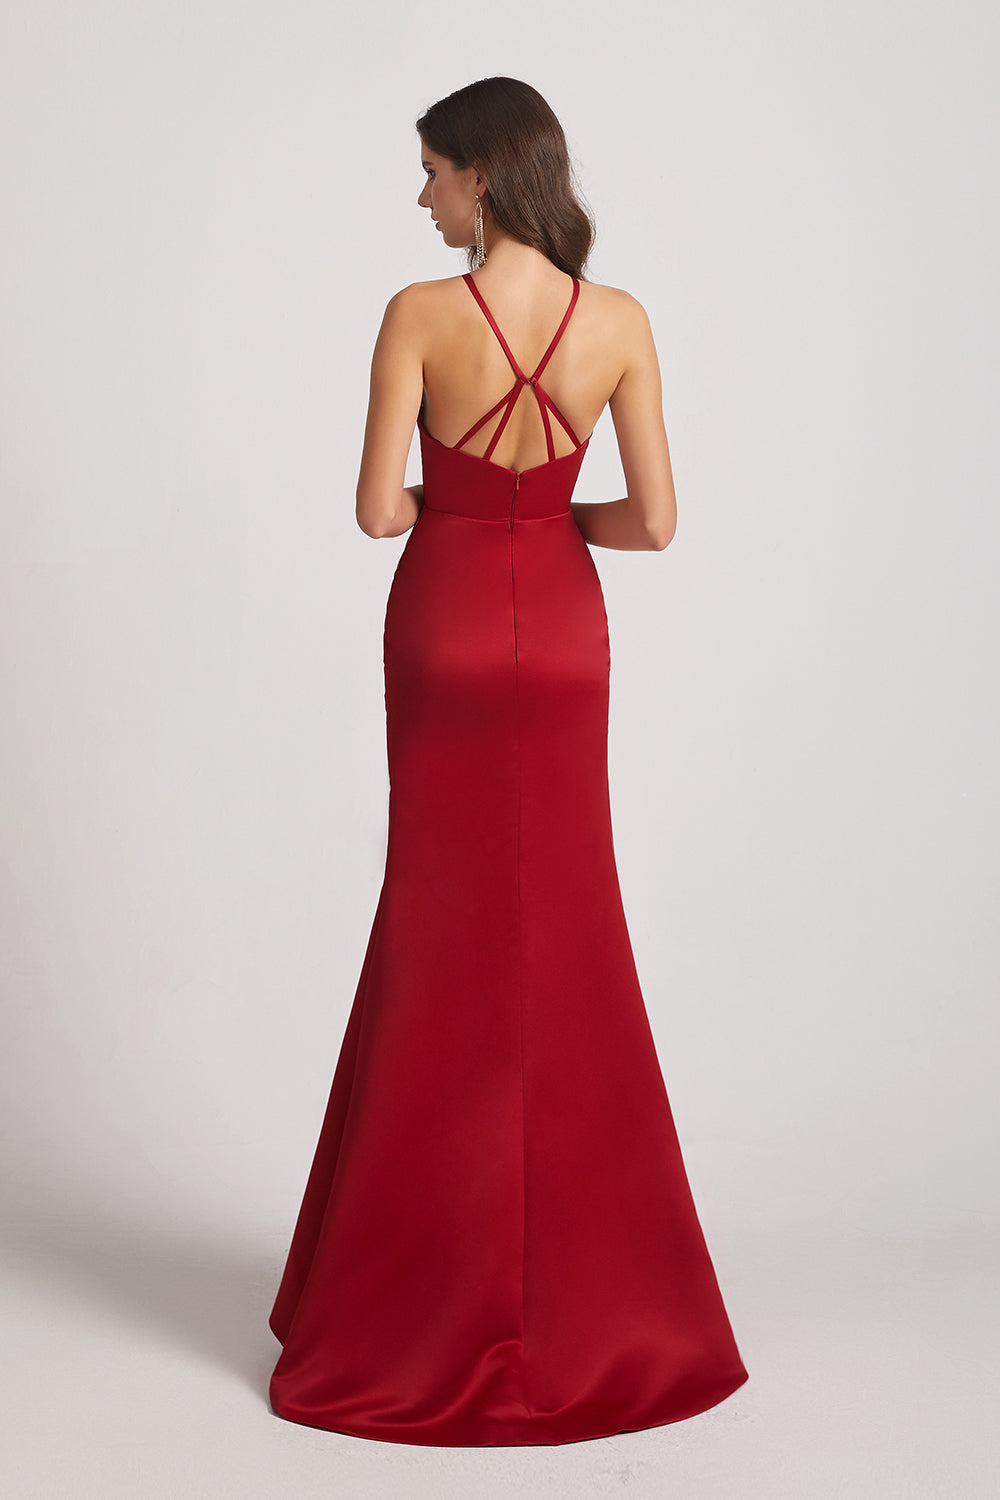 open back red maids of honor dresses